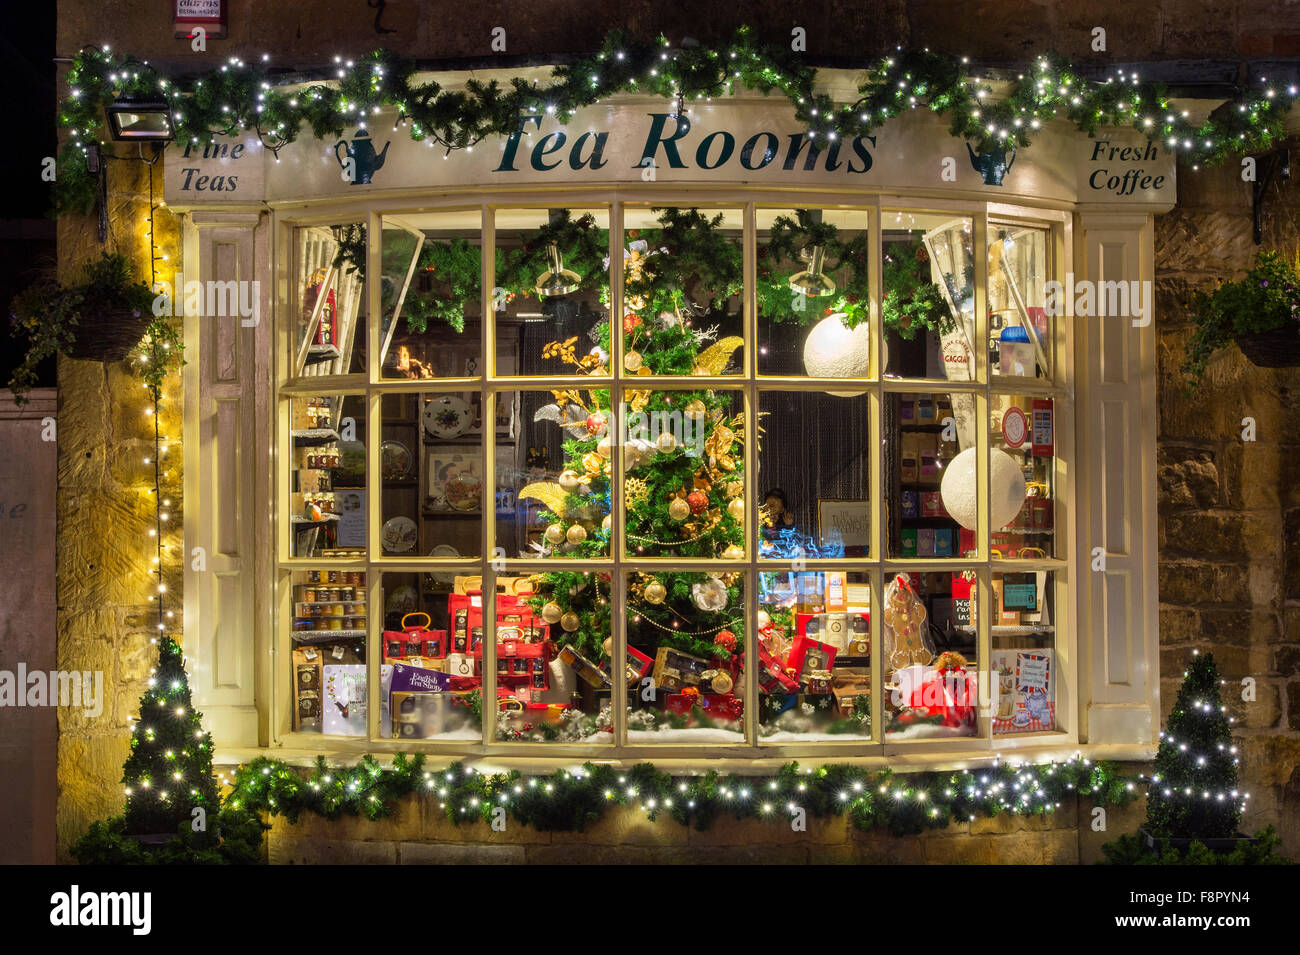 Broadway tea rooms Christmas tree shop display window at night ...